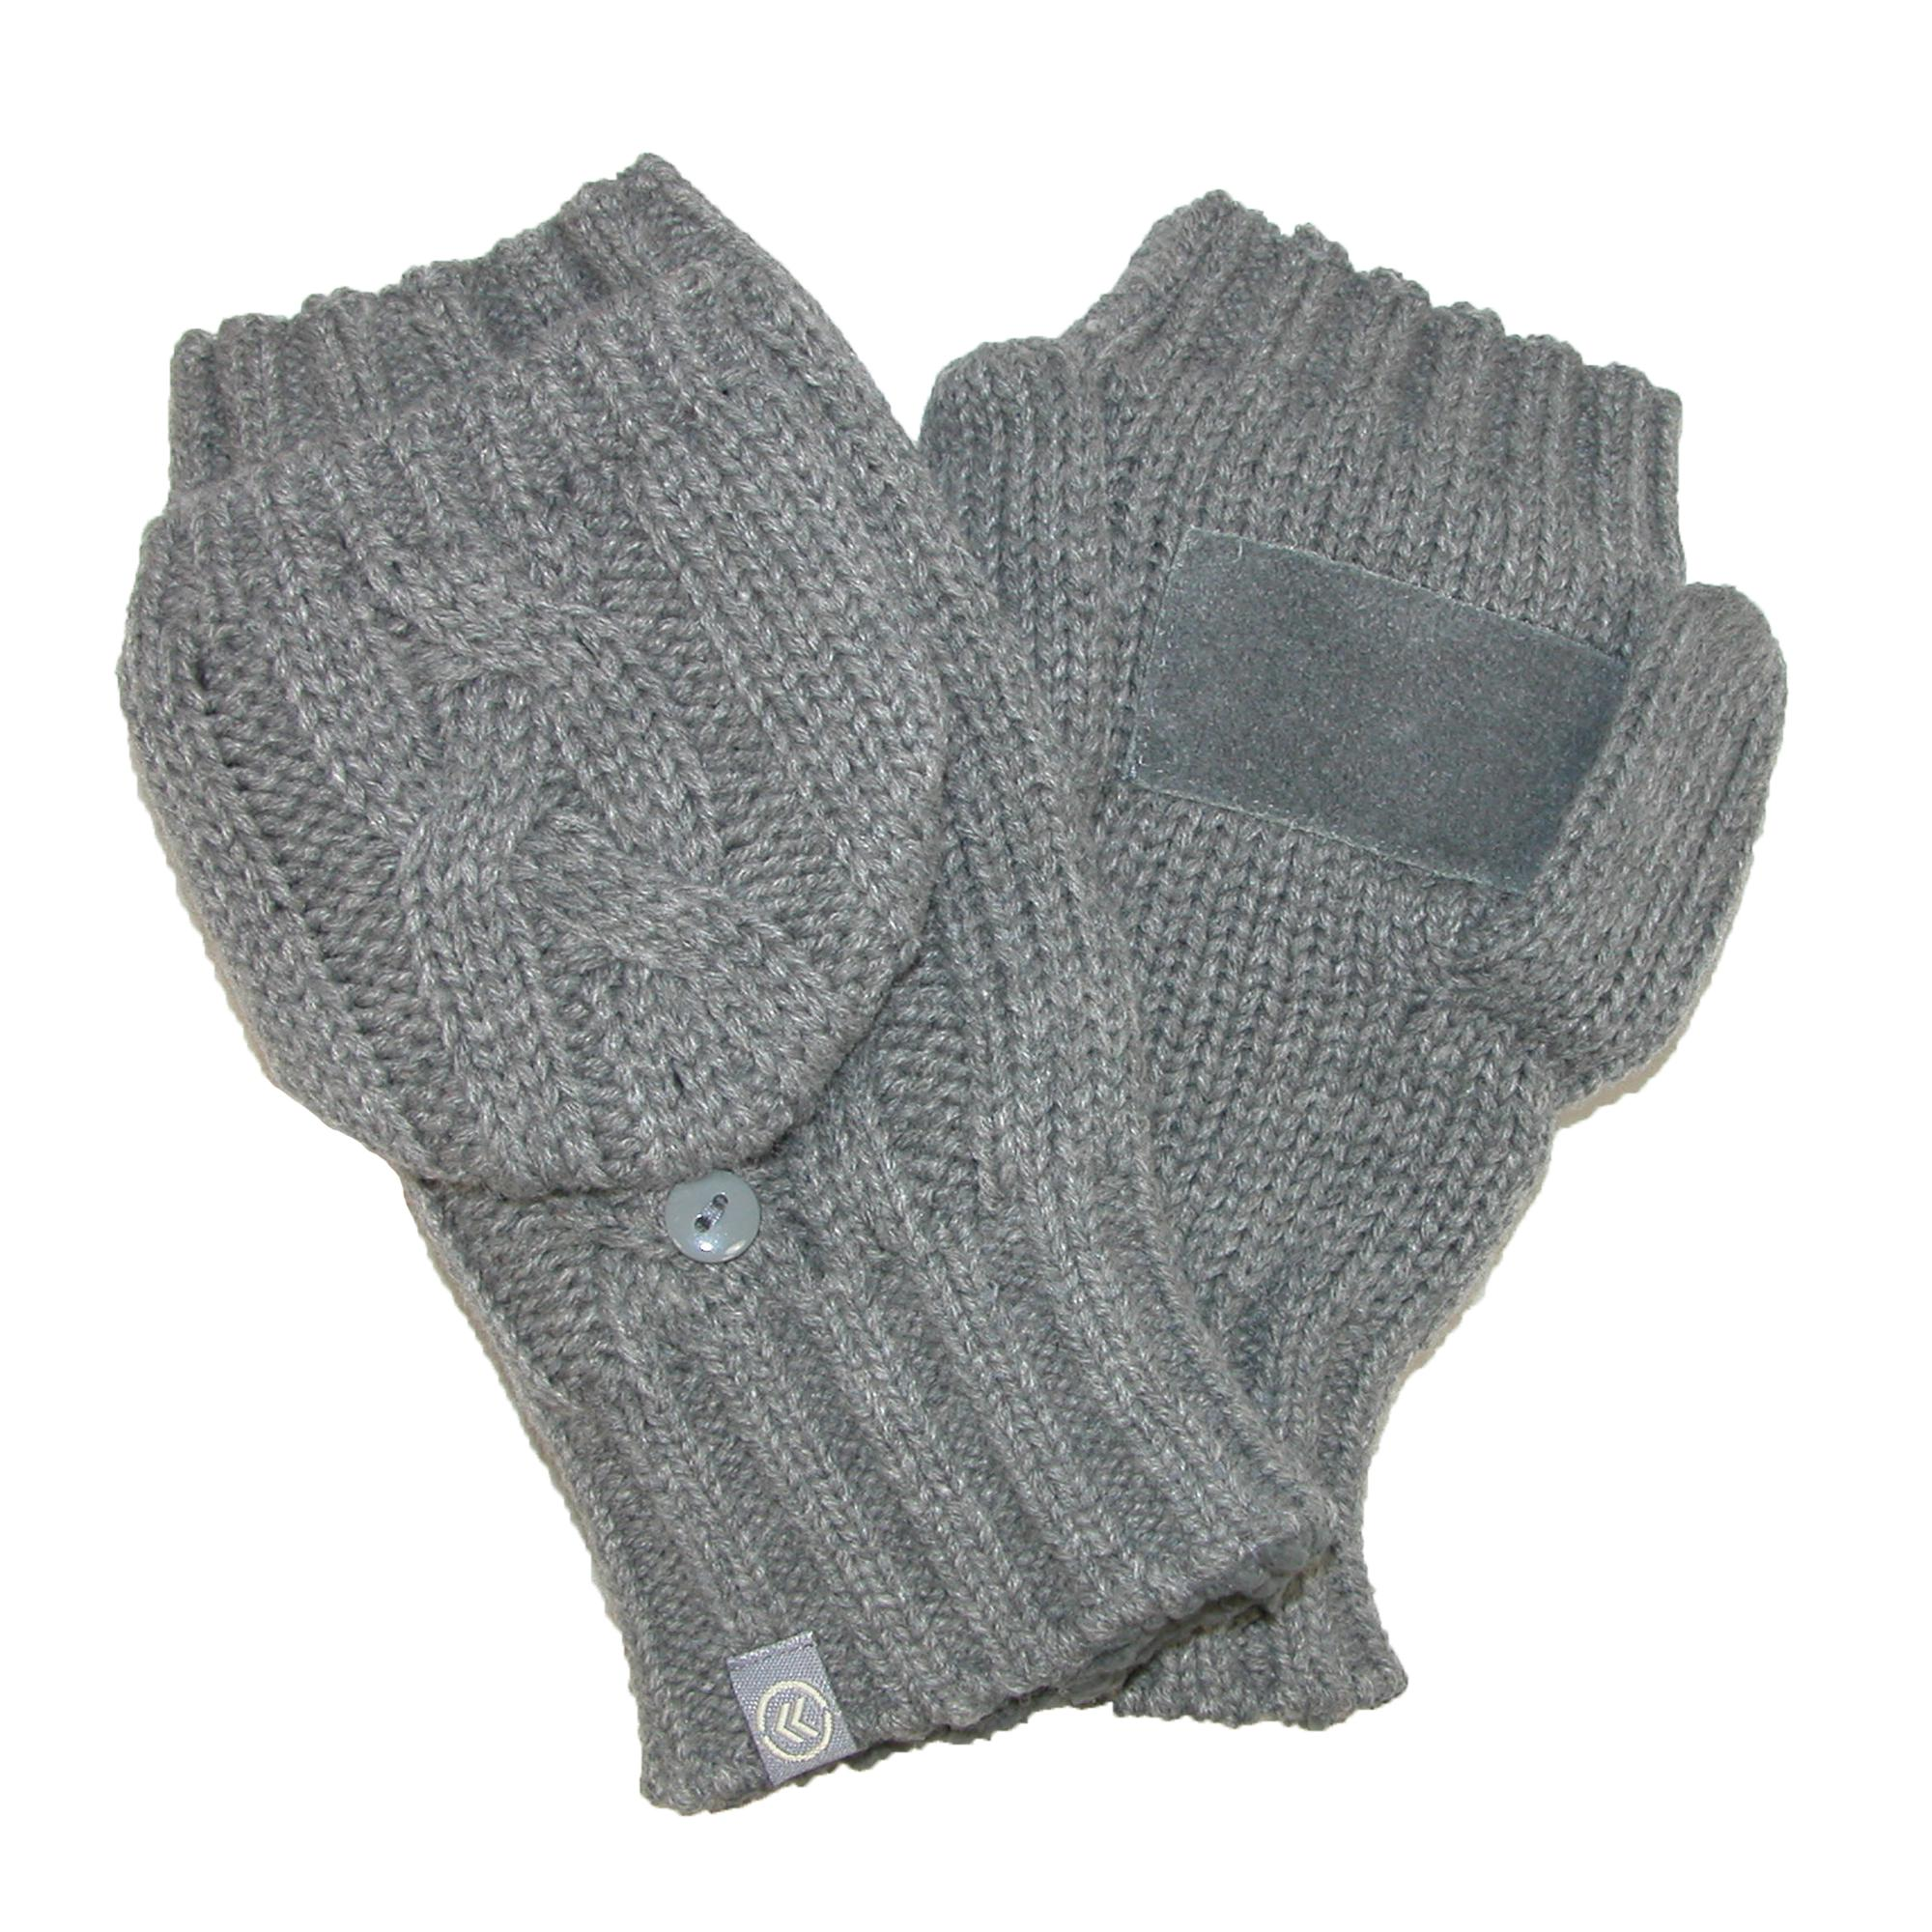 Isotoner Womens Chunky Cable Knit Convertible Gloves